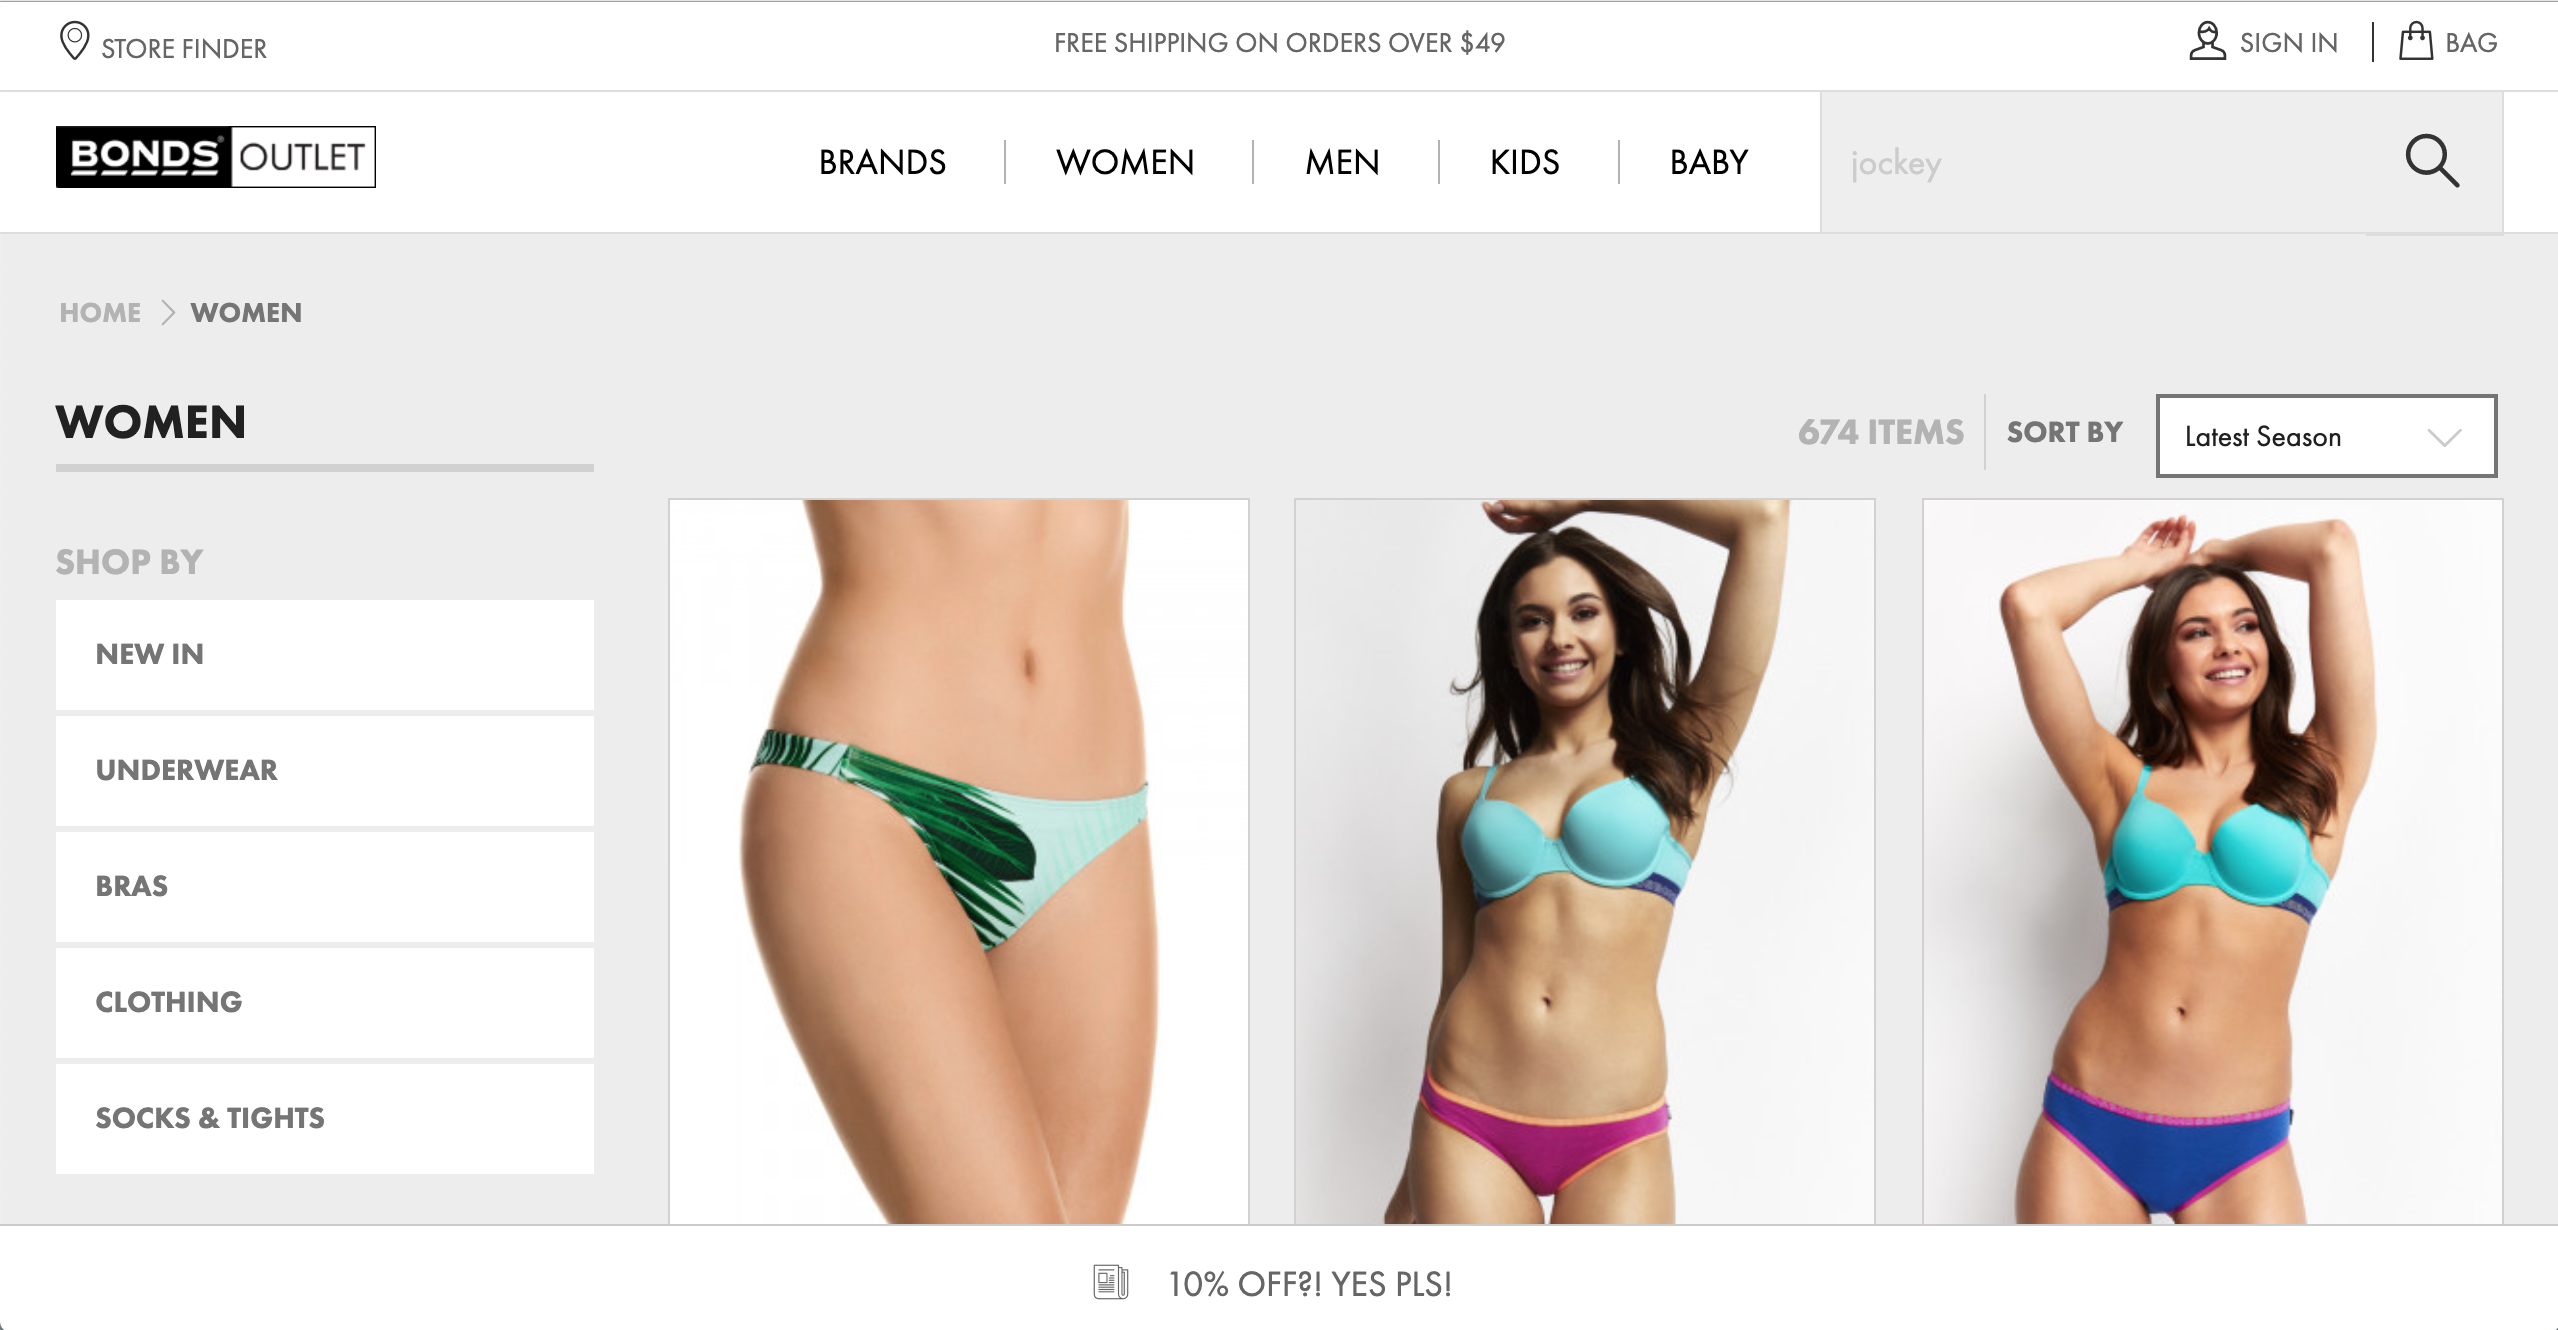 Bonds Outlet Women s products page